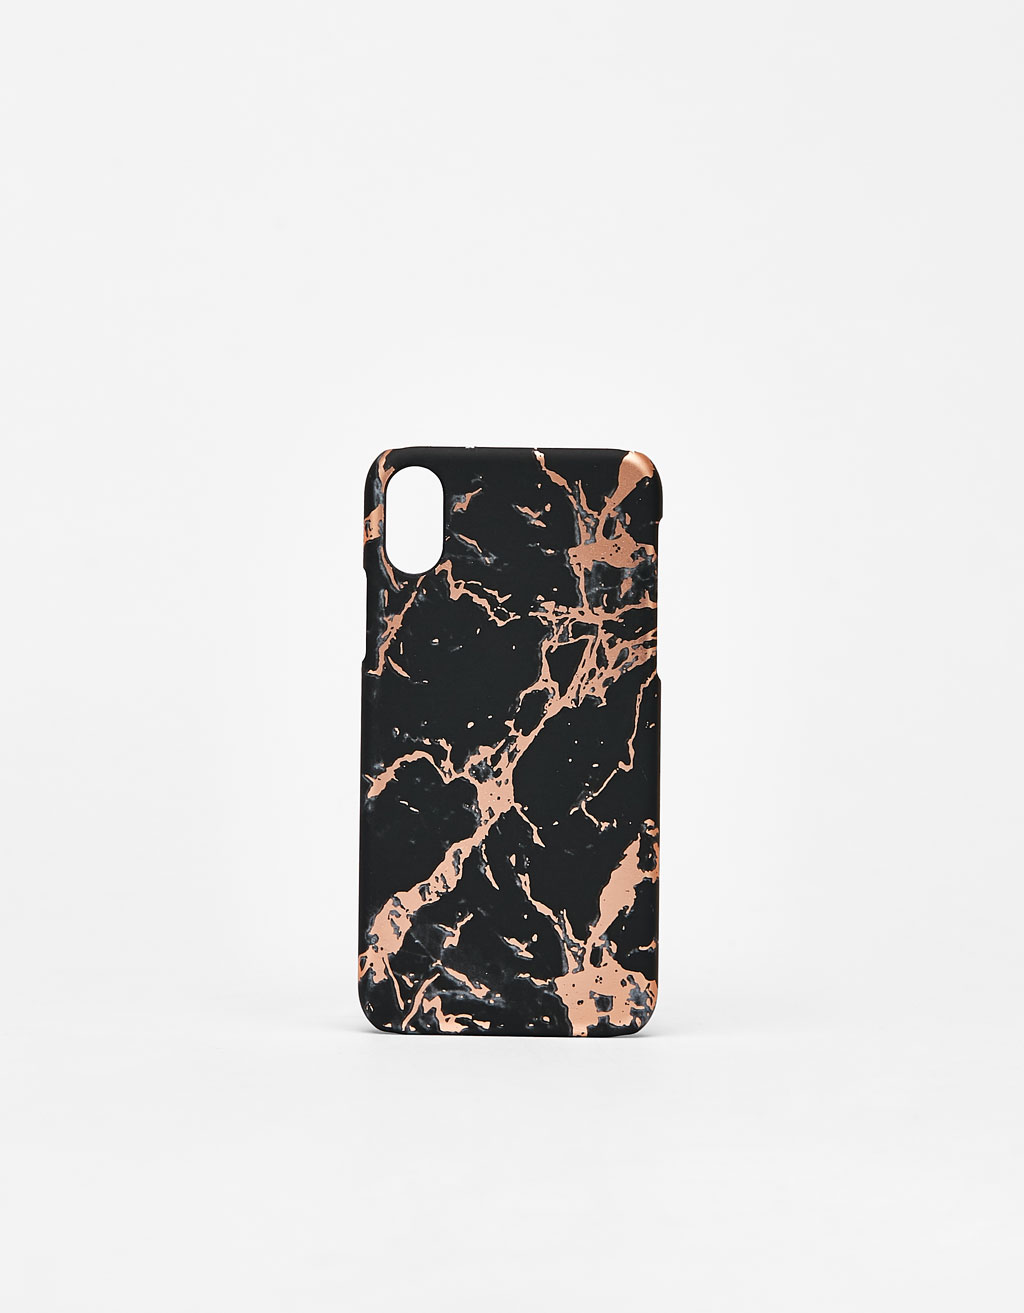 Coque imitation marbre iPhone X